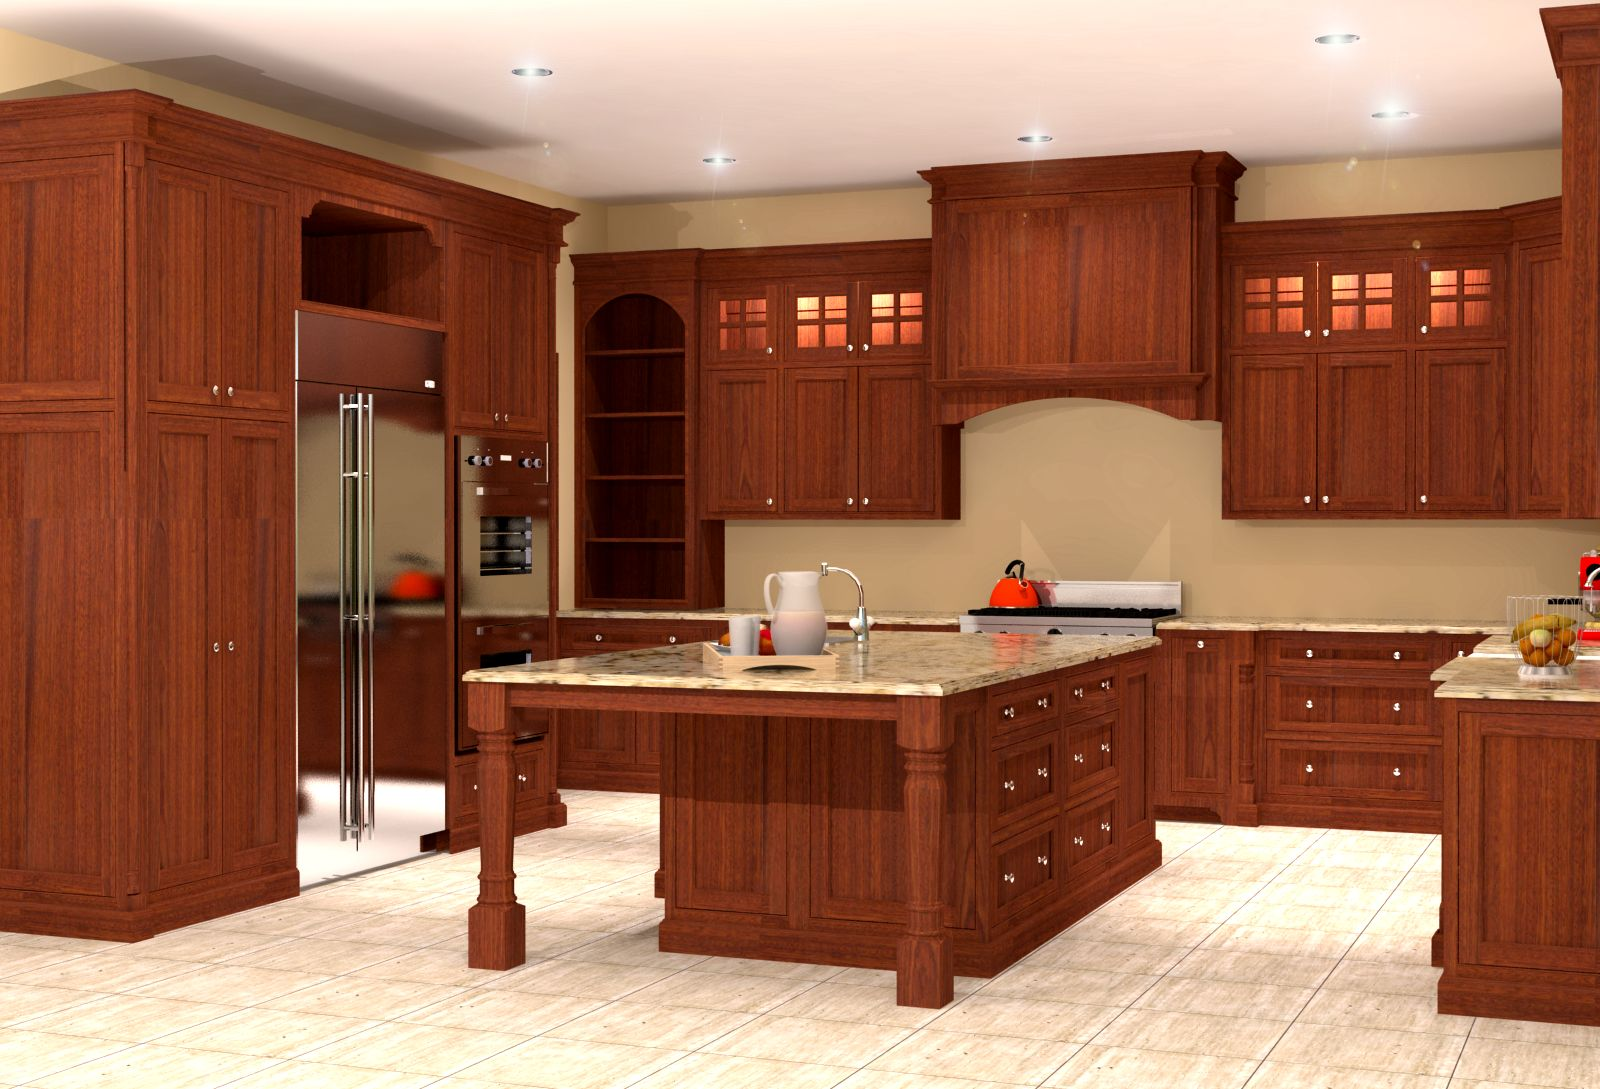 inset mahogany kitchen design rendering nick miller design